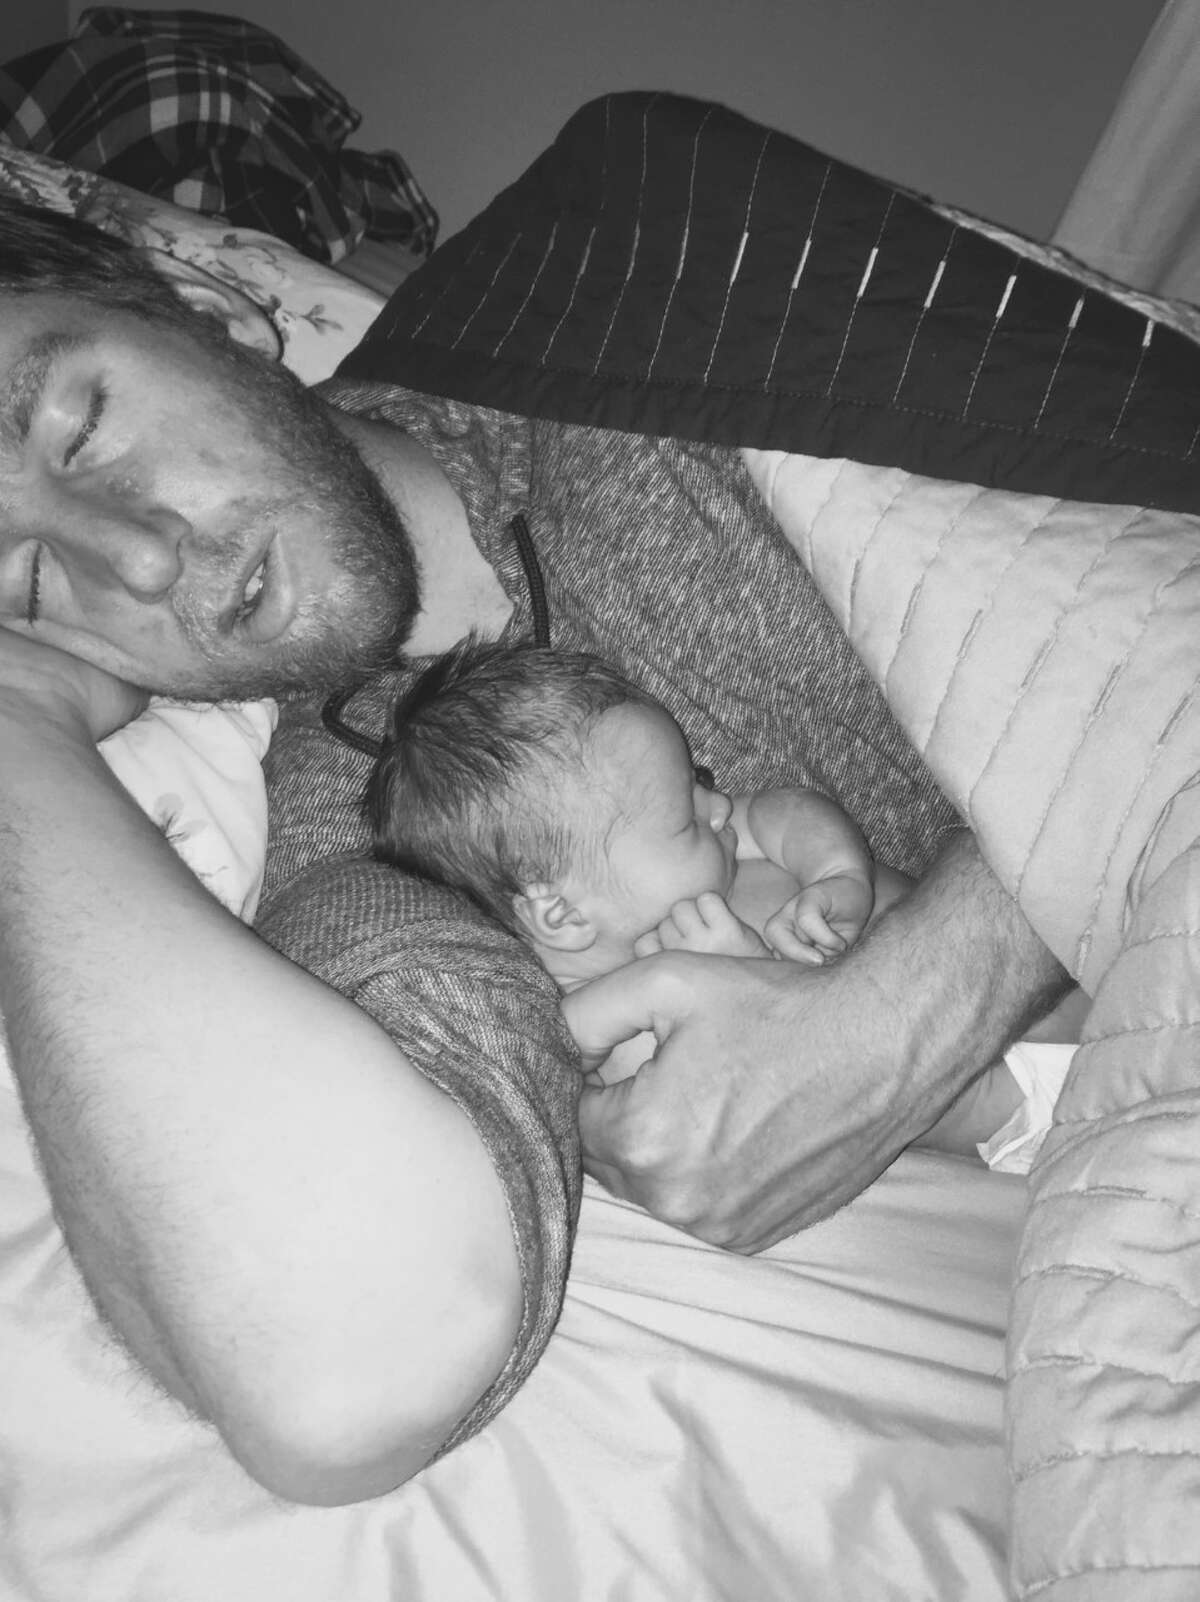 It's nap time for James and baby Savannah.